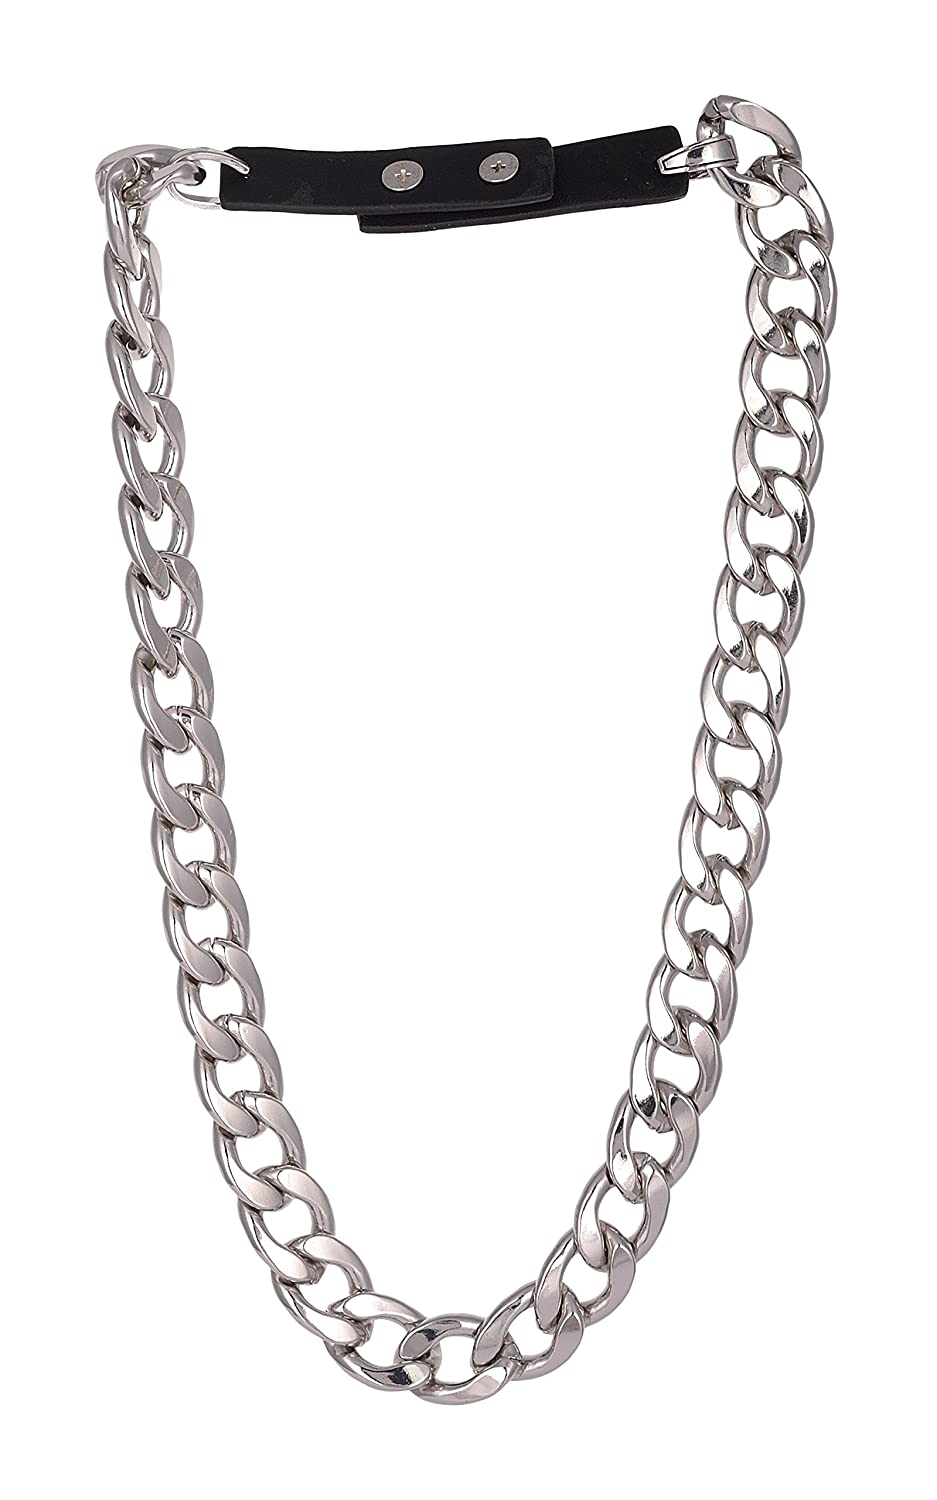 42d33548021 Buy Steve Madden Festive Silver Metal Chain for Women (SMN467946RH) Online  at Low Prices in India